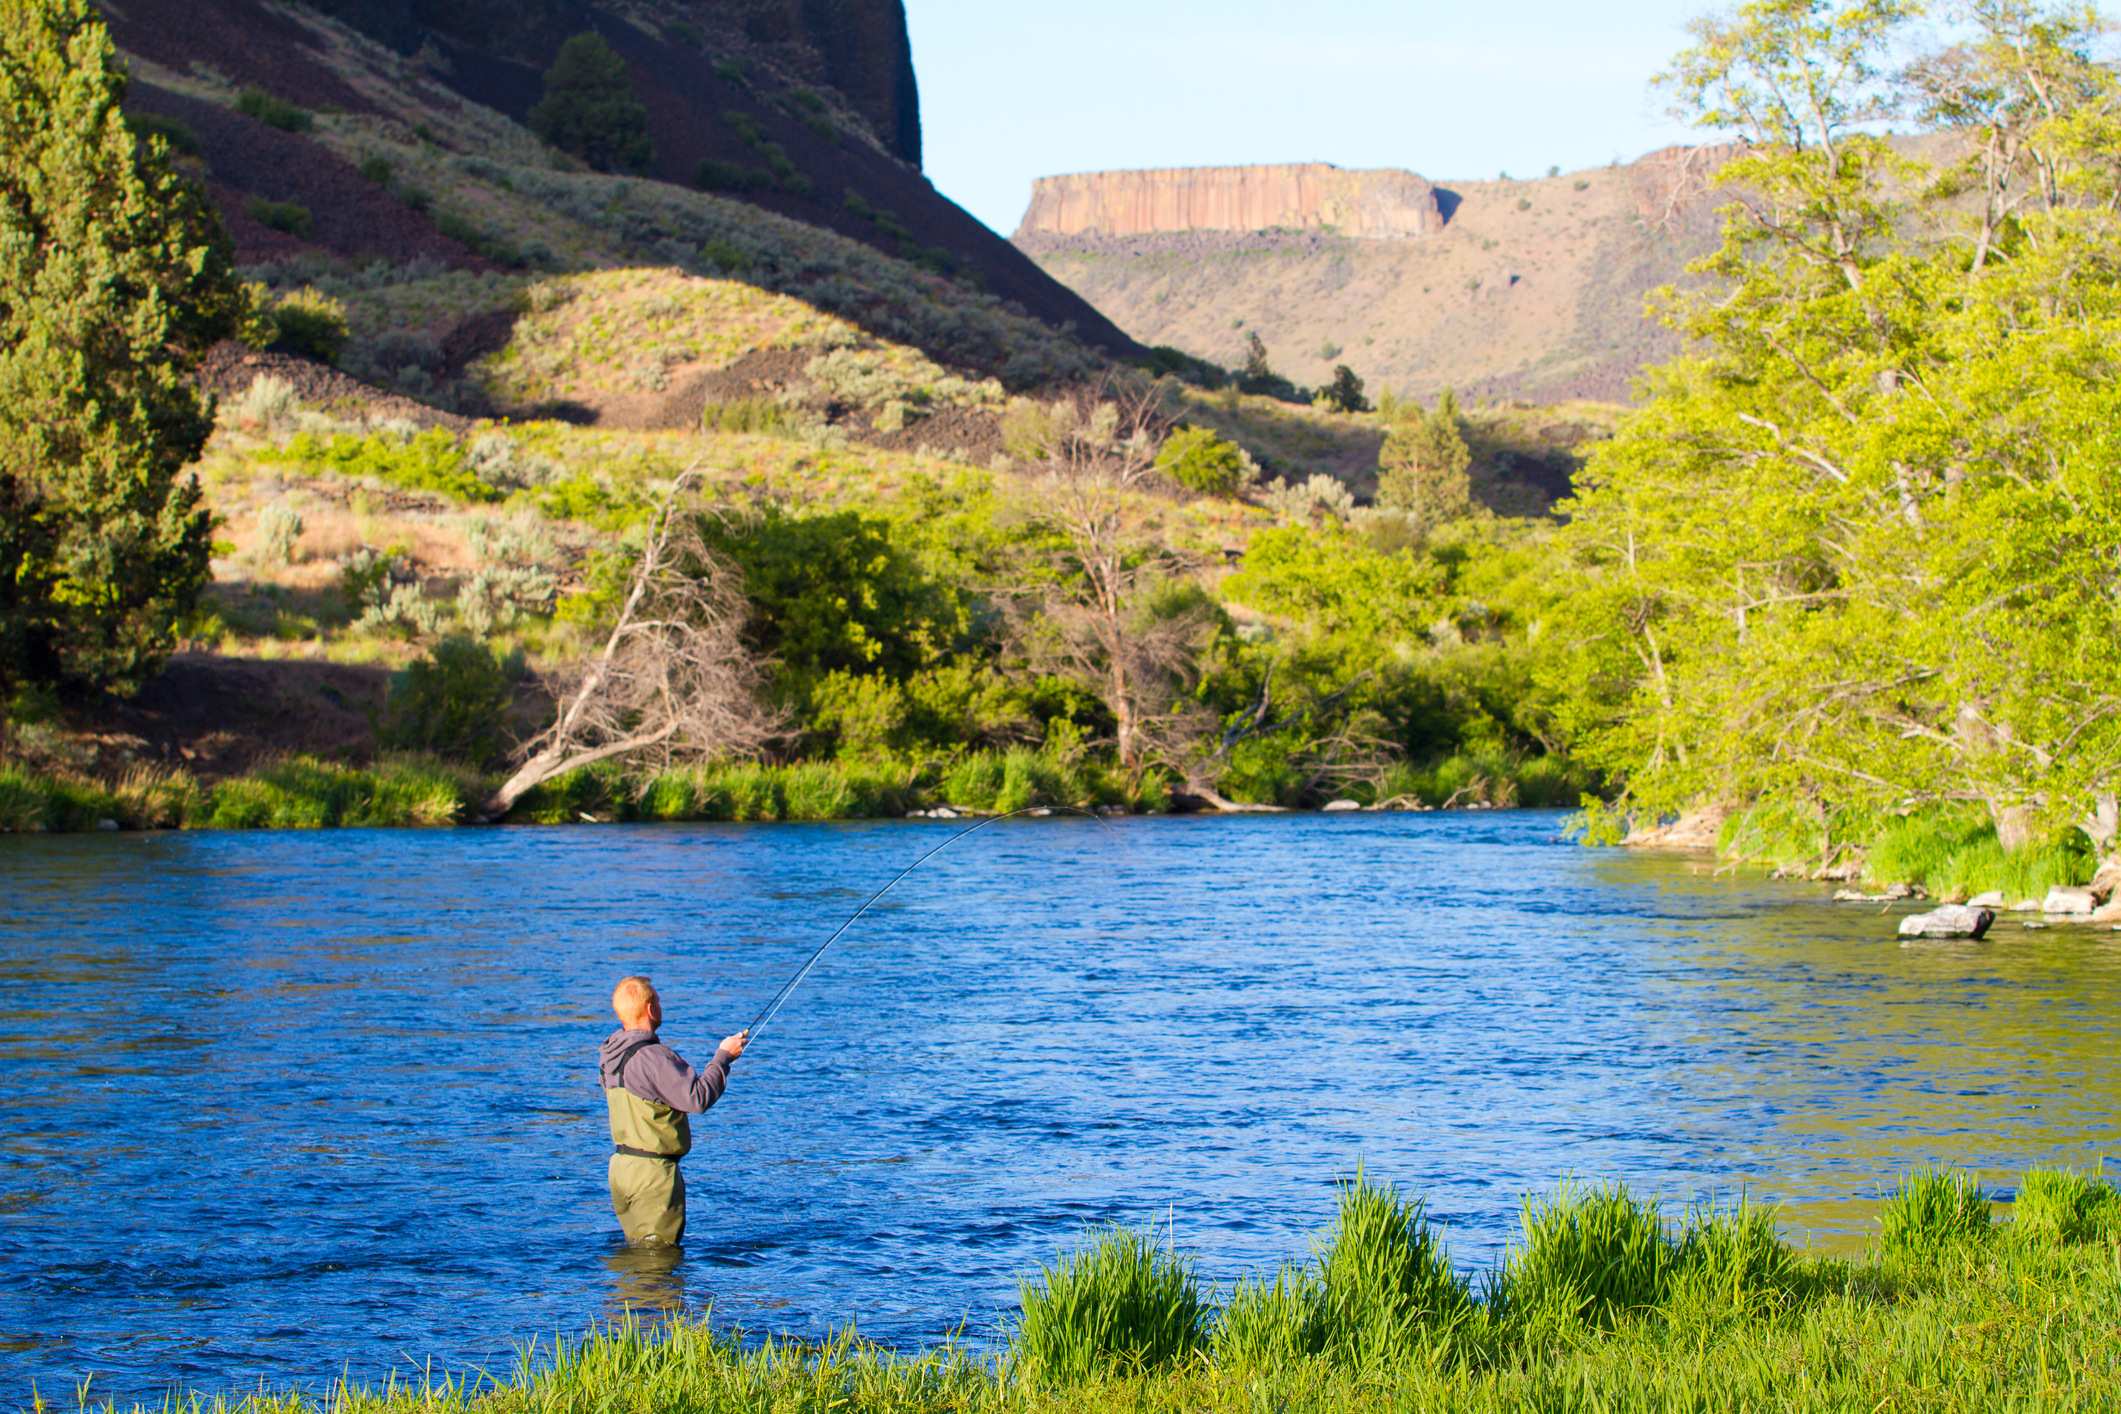 An experienced fly fisherman wades in the water of a powerful river..